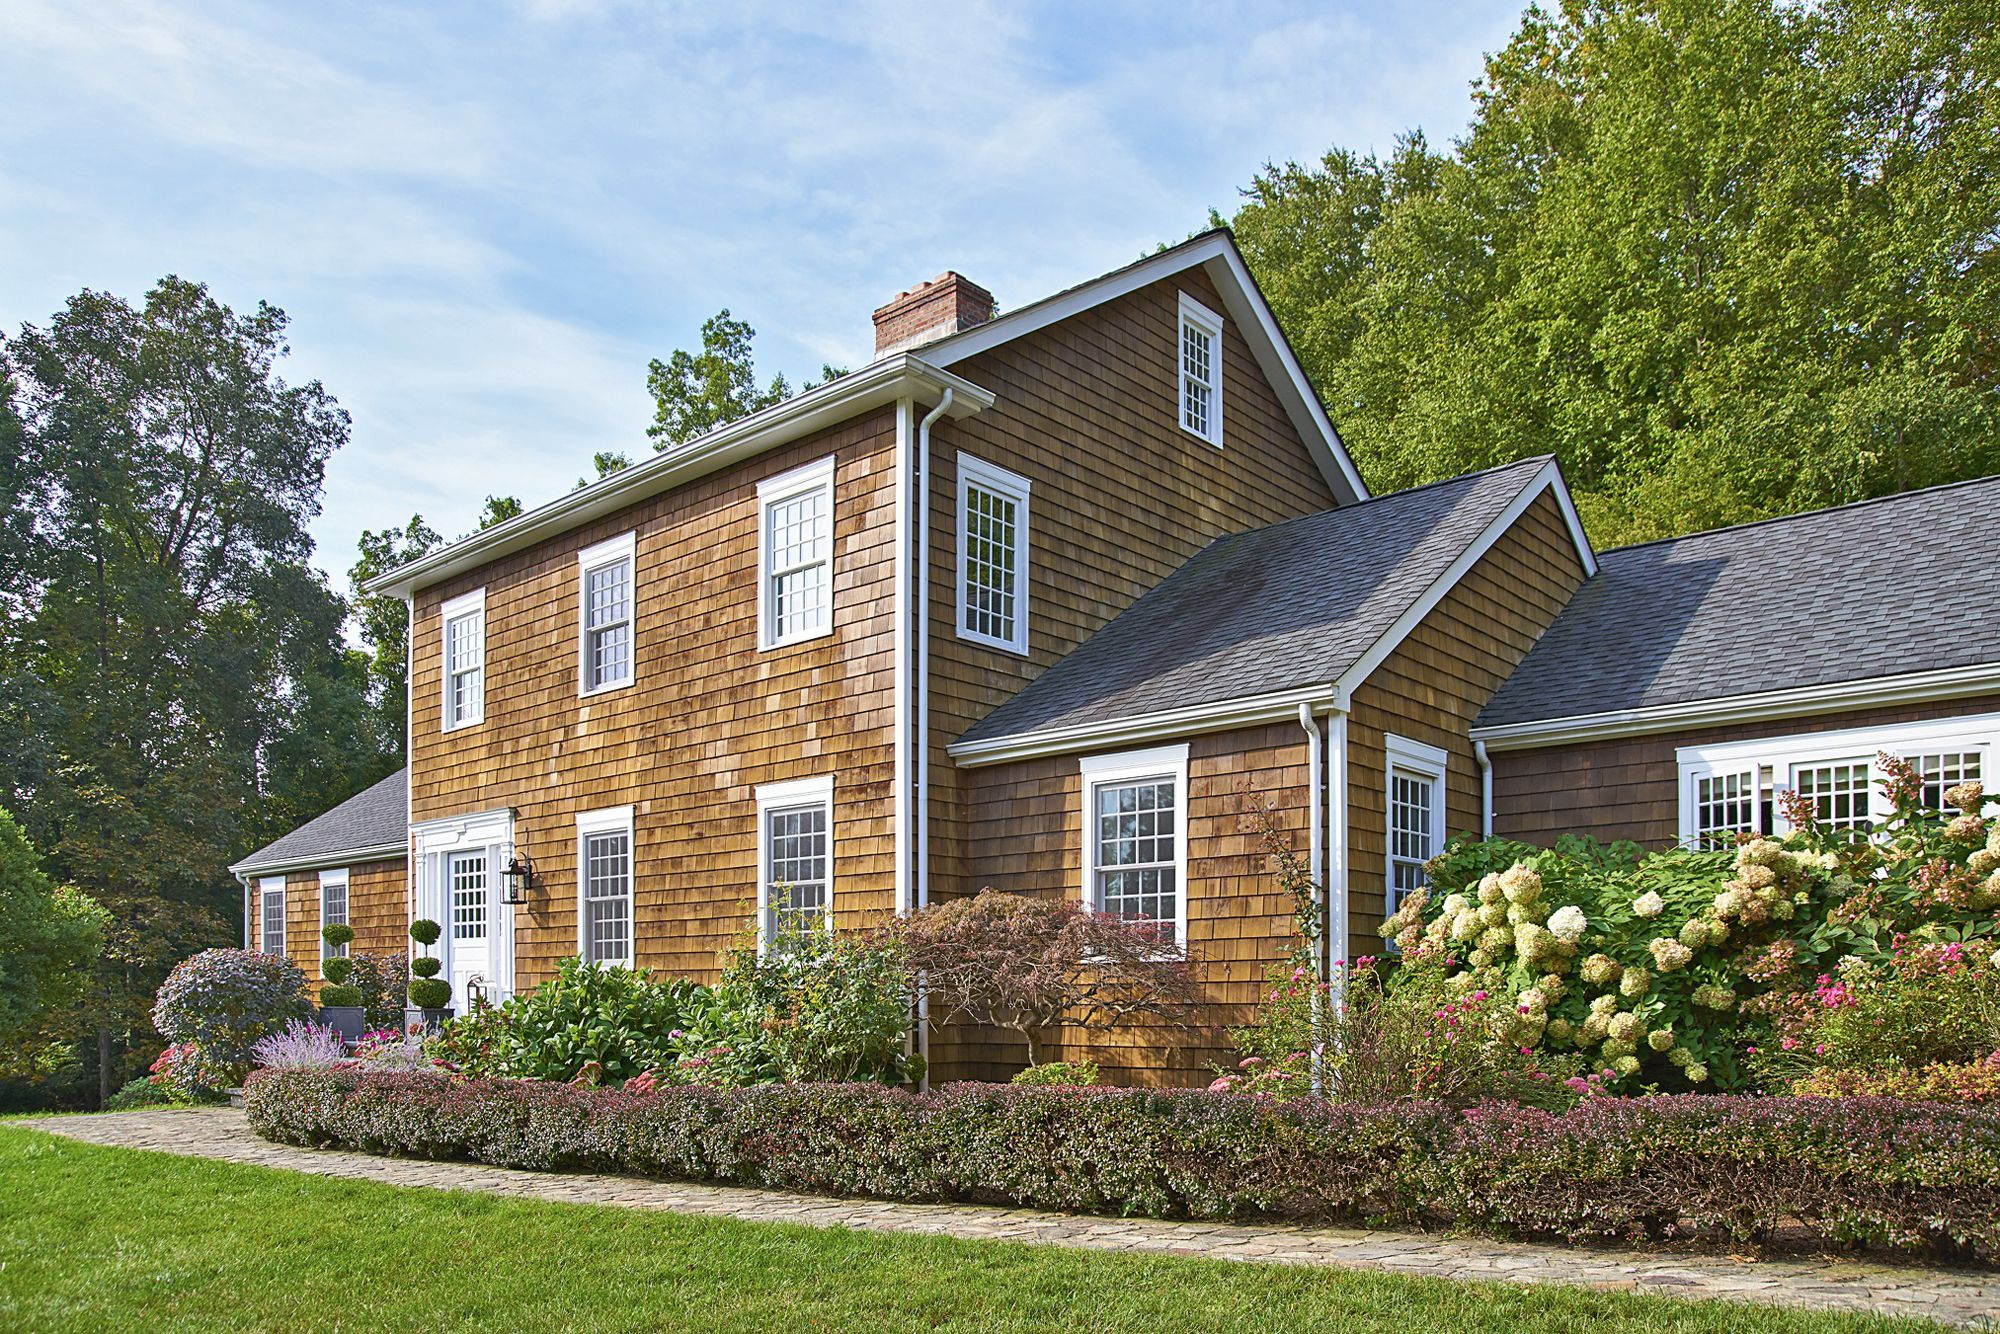 Forum on this topic: From Rundown 1880s Farmhouse to Renovated Modern , from-rundown-1880s-farmhouse-to-renovated-modern/